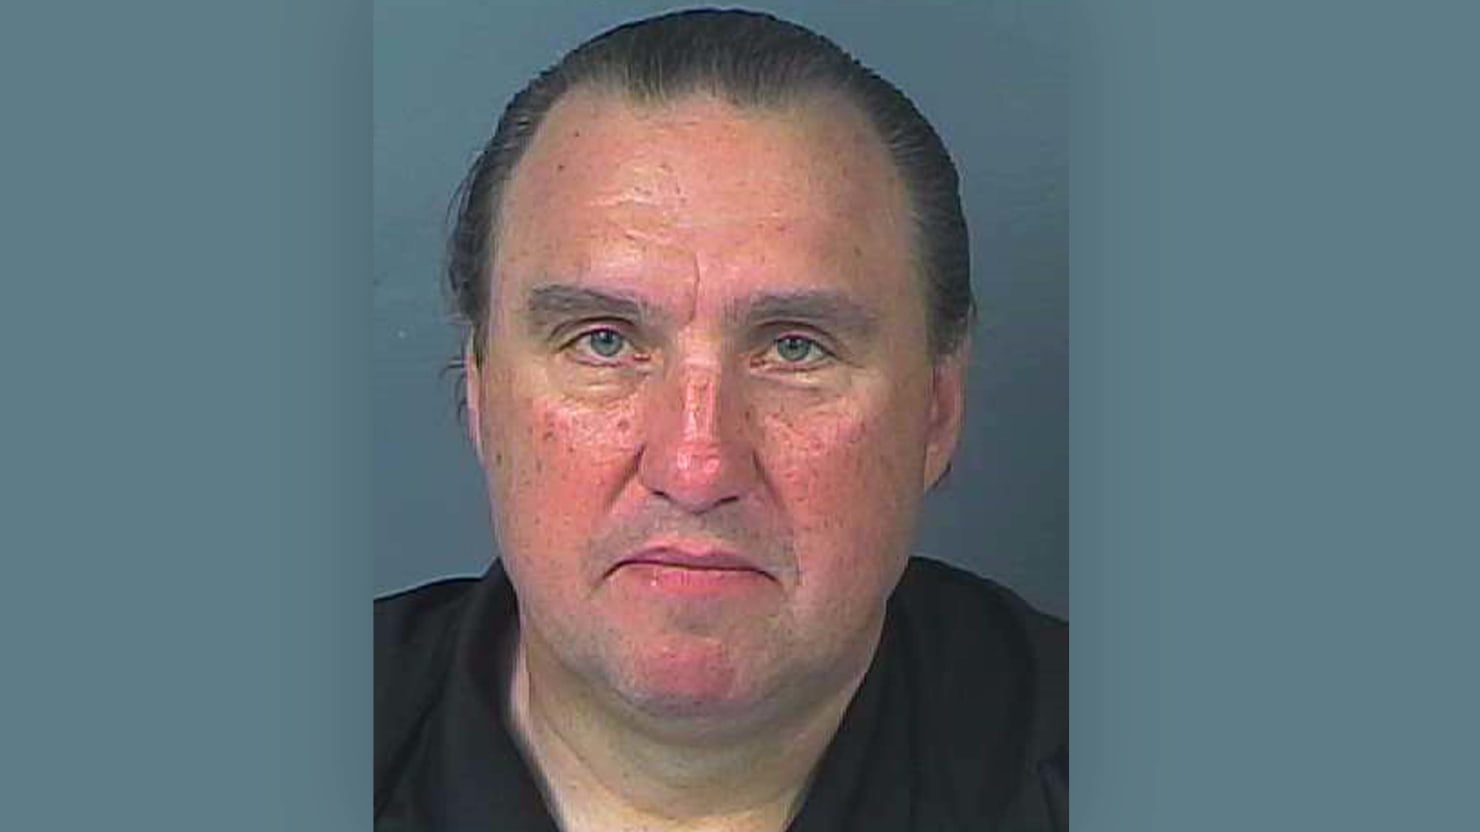 Rodney Howard-Browne, Megachurch Pastor Who Flouted Virus Rules, Arrested